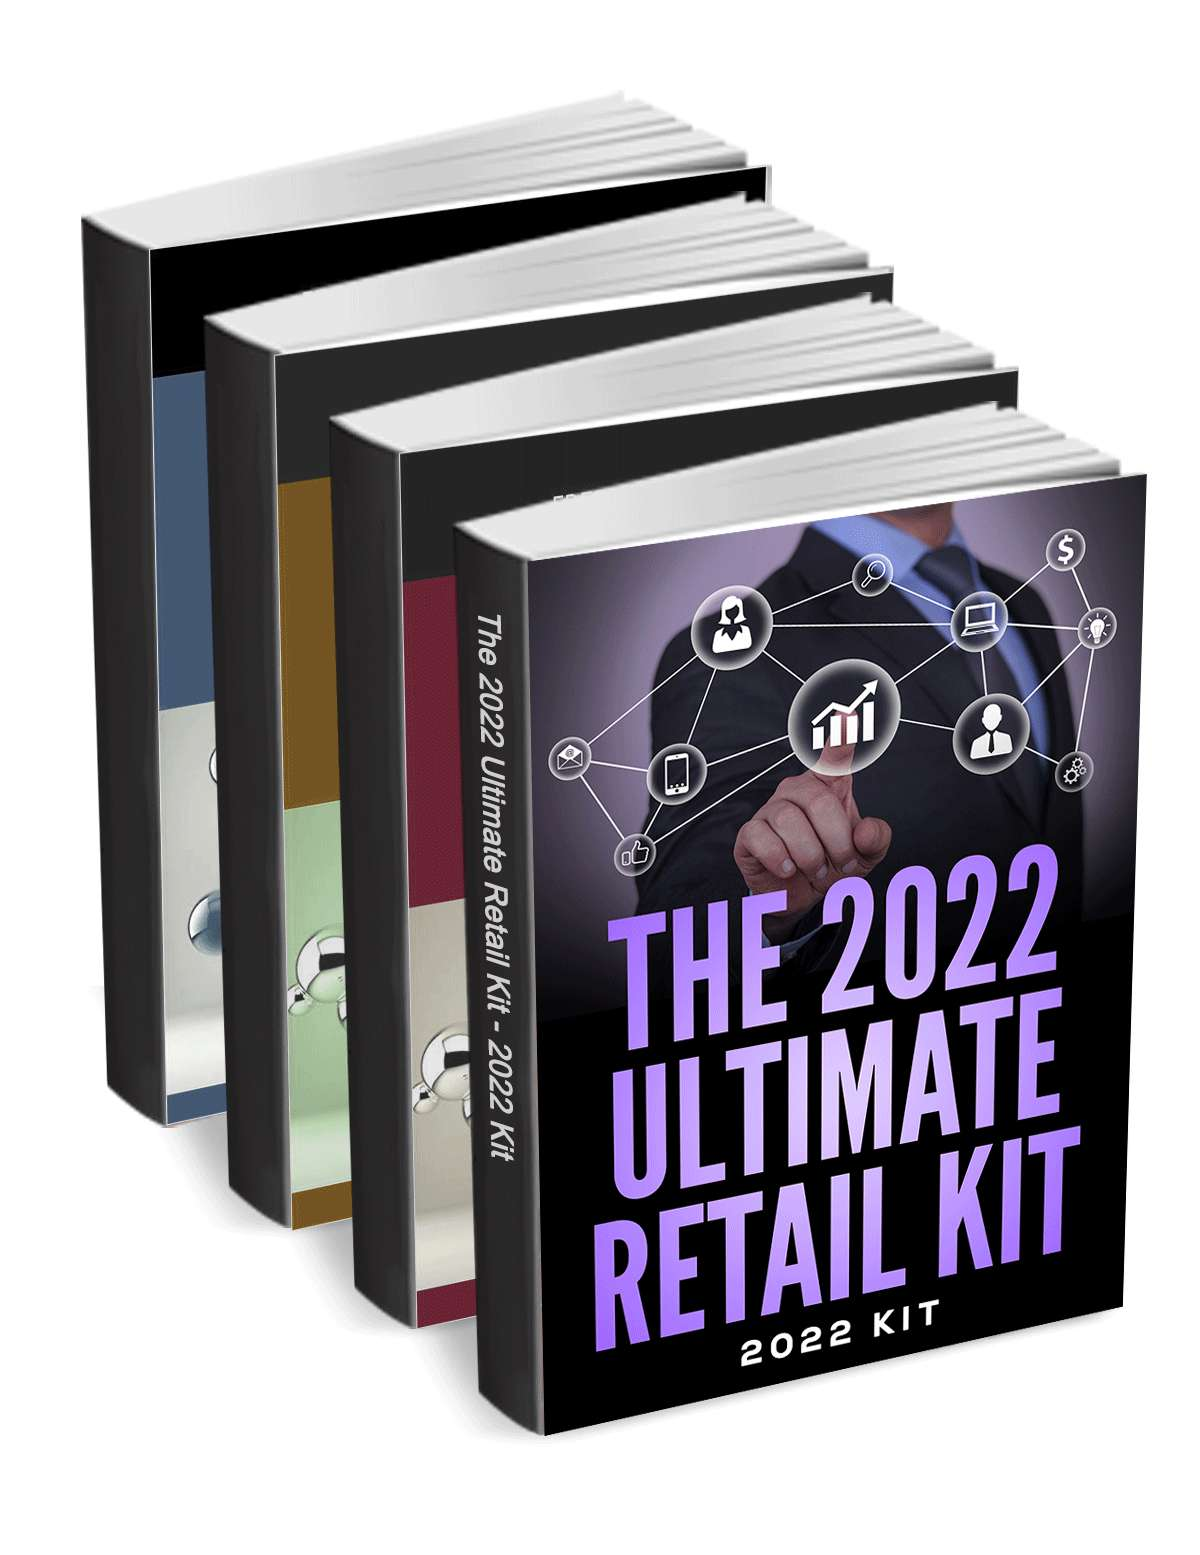 The 2017 Ultimate Retail Kit